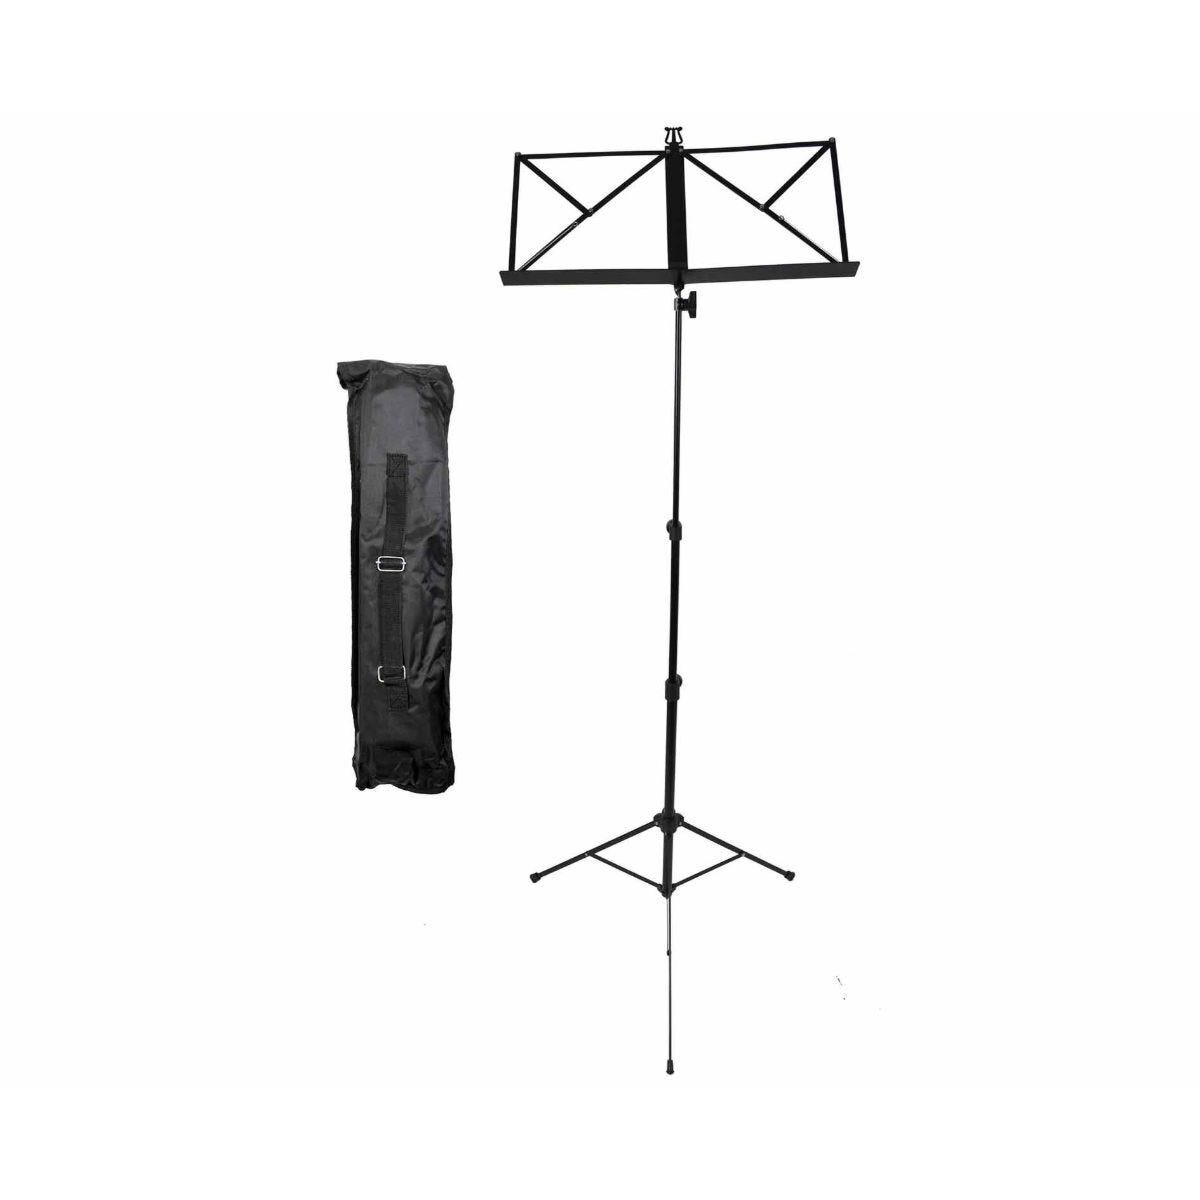 Rocket Folding Music Stand with Carry Bag